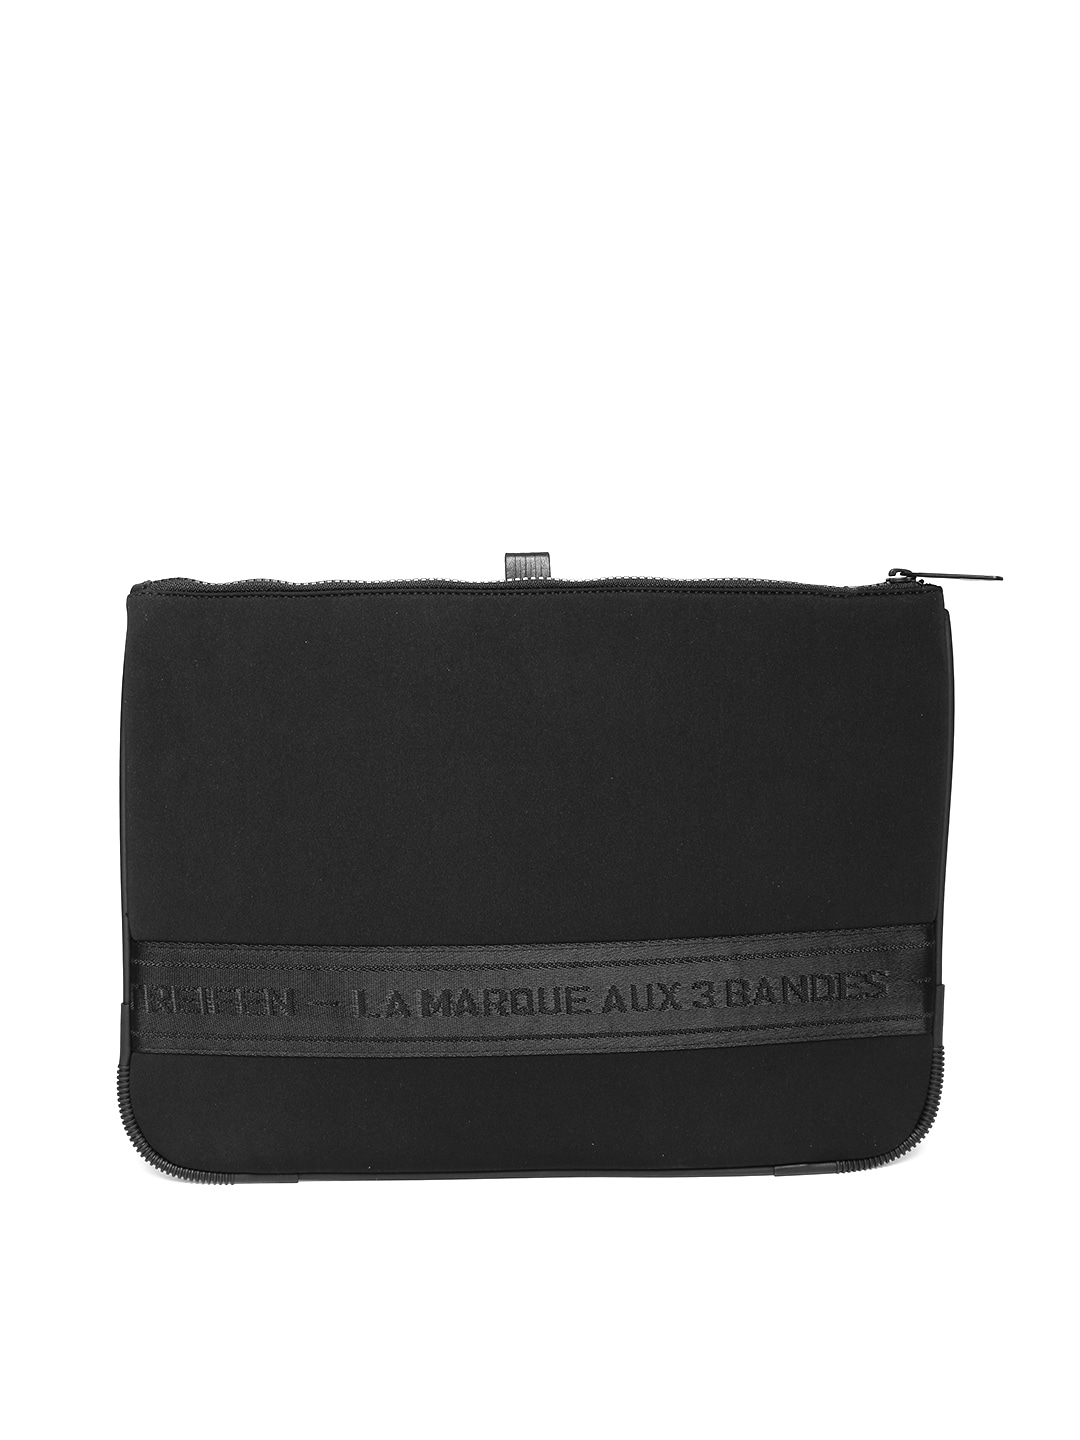 Laptop Sleeve - Buy Laptop Sleeves Online in India  d5db54e5a4e3c